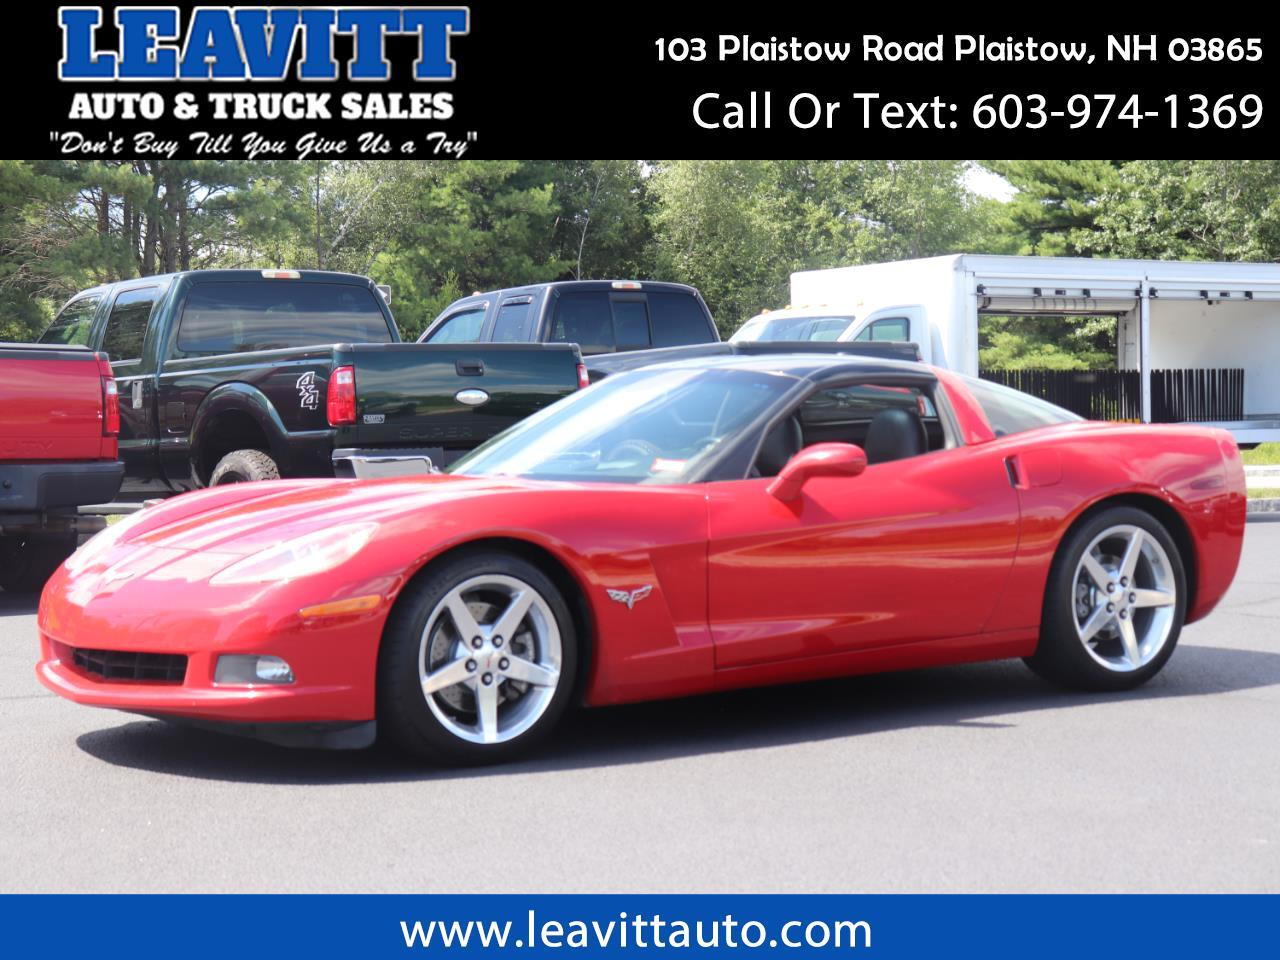 2005 Chevrolet Corvette IMMACULATE CONDITION